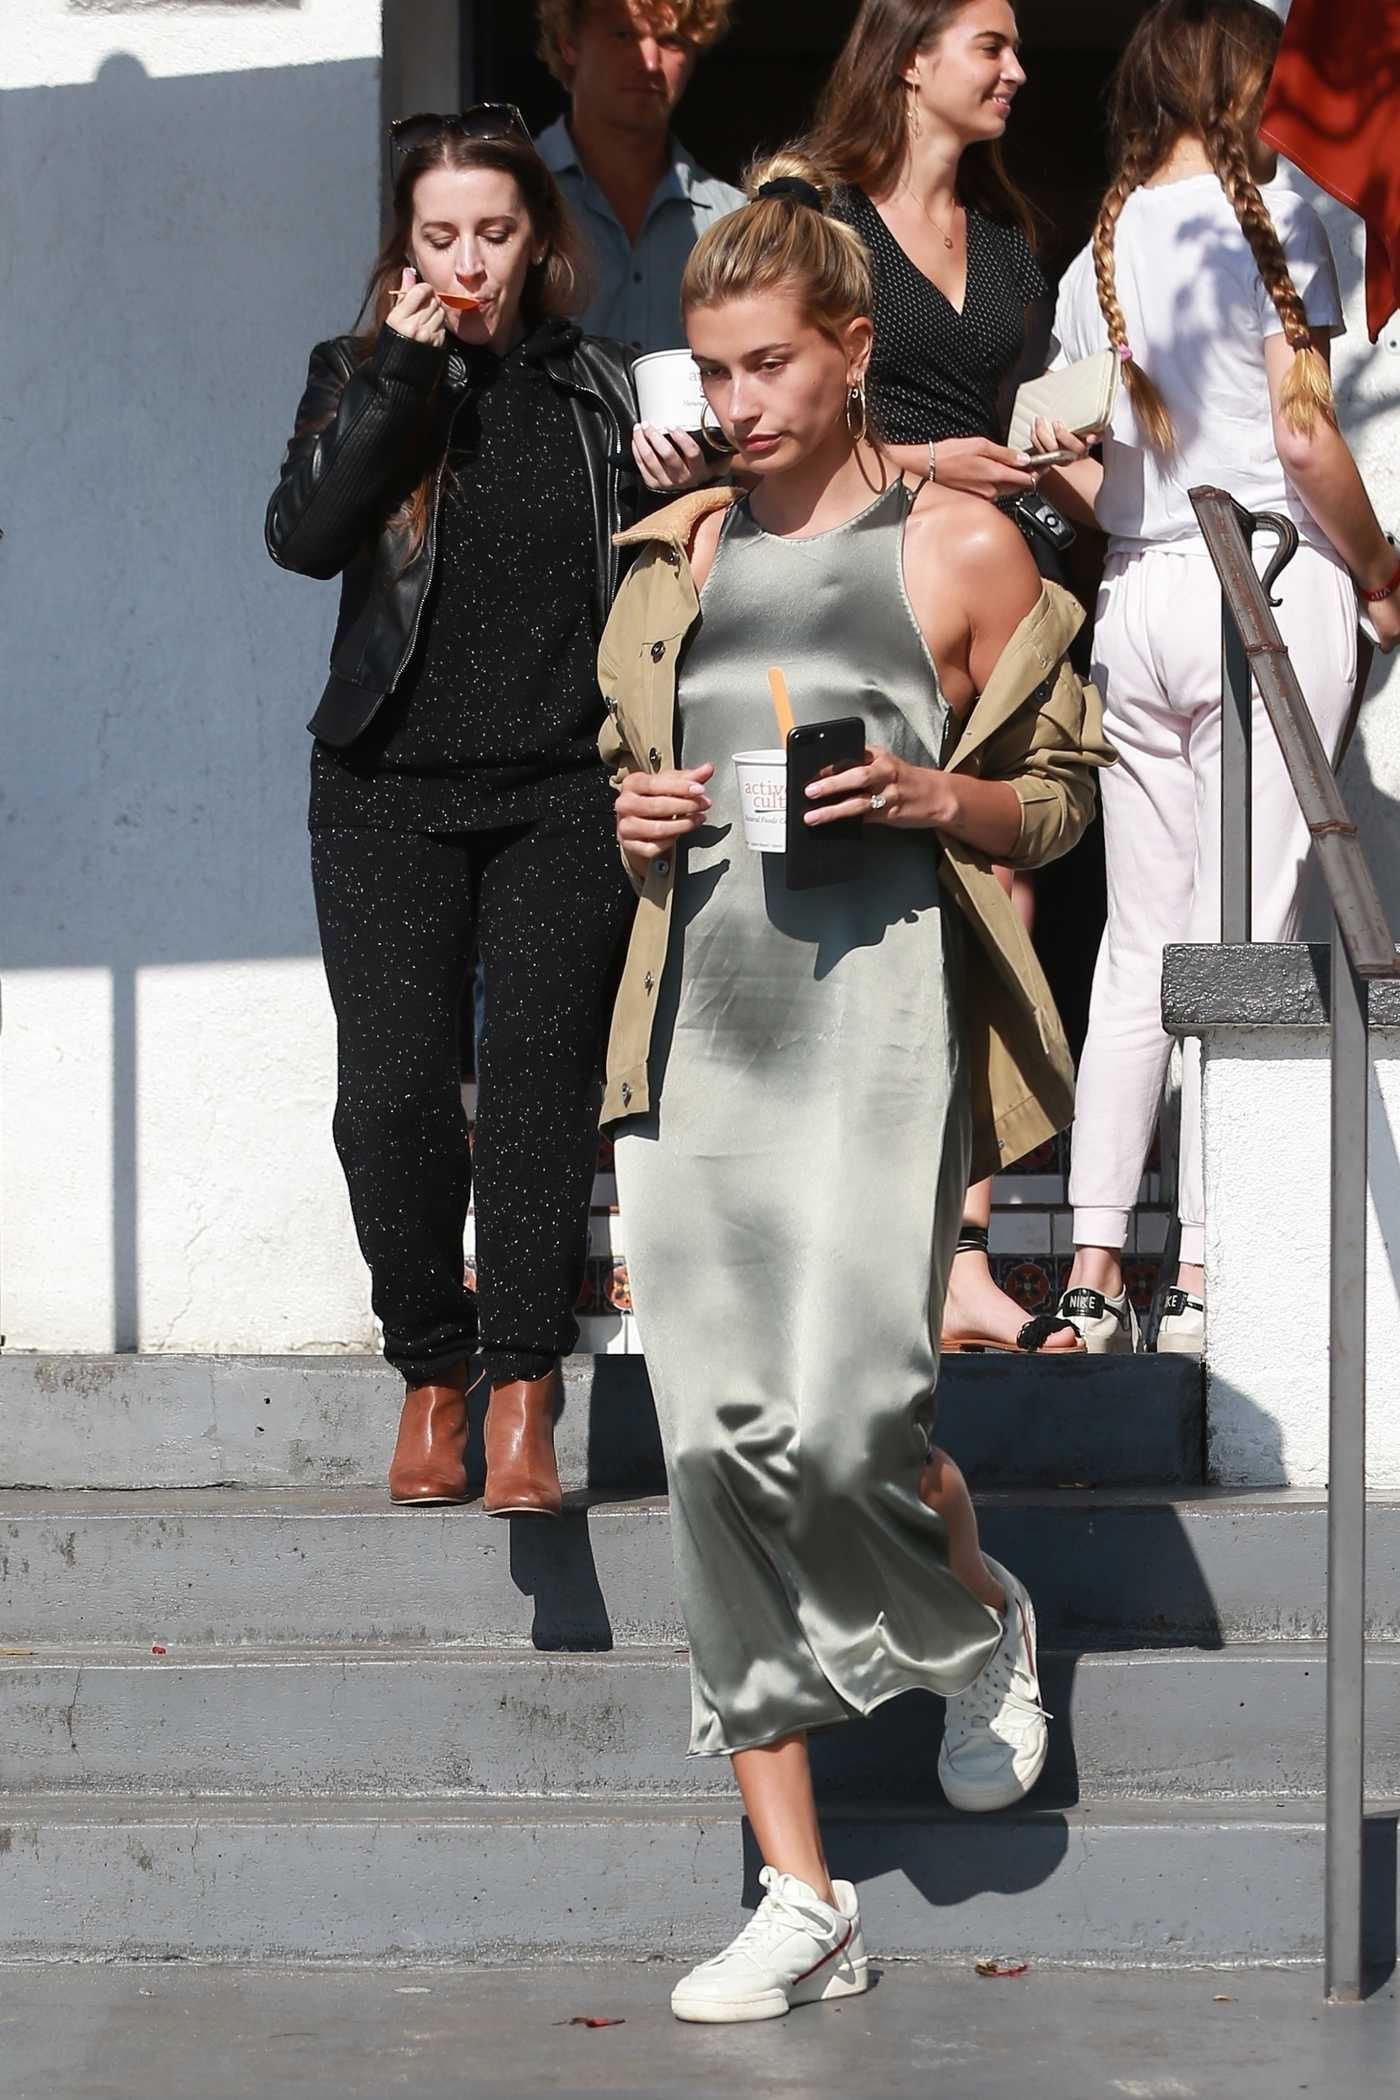 Hailey Baldwin in a Silver Dress Was Seen Out in Laguna Beach 03/24/2019